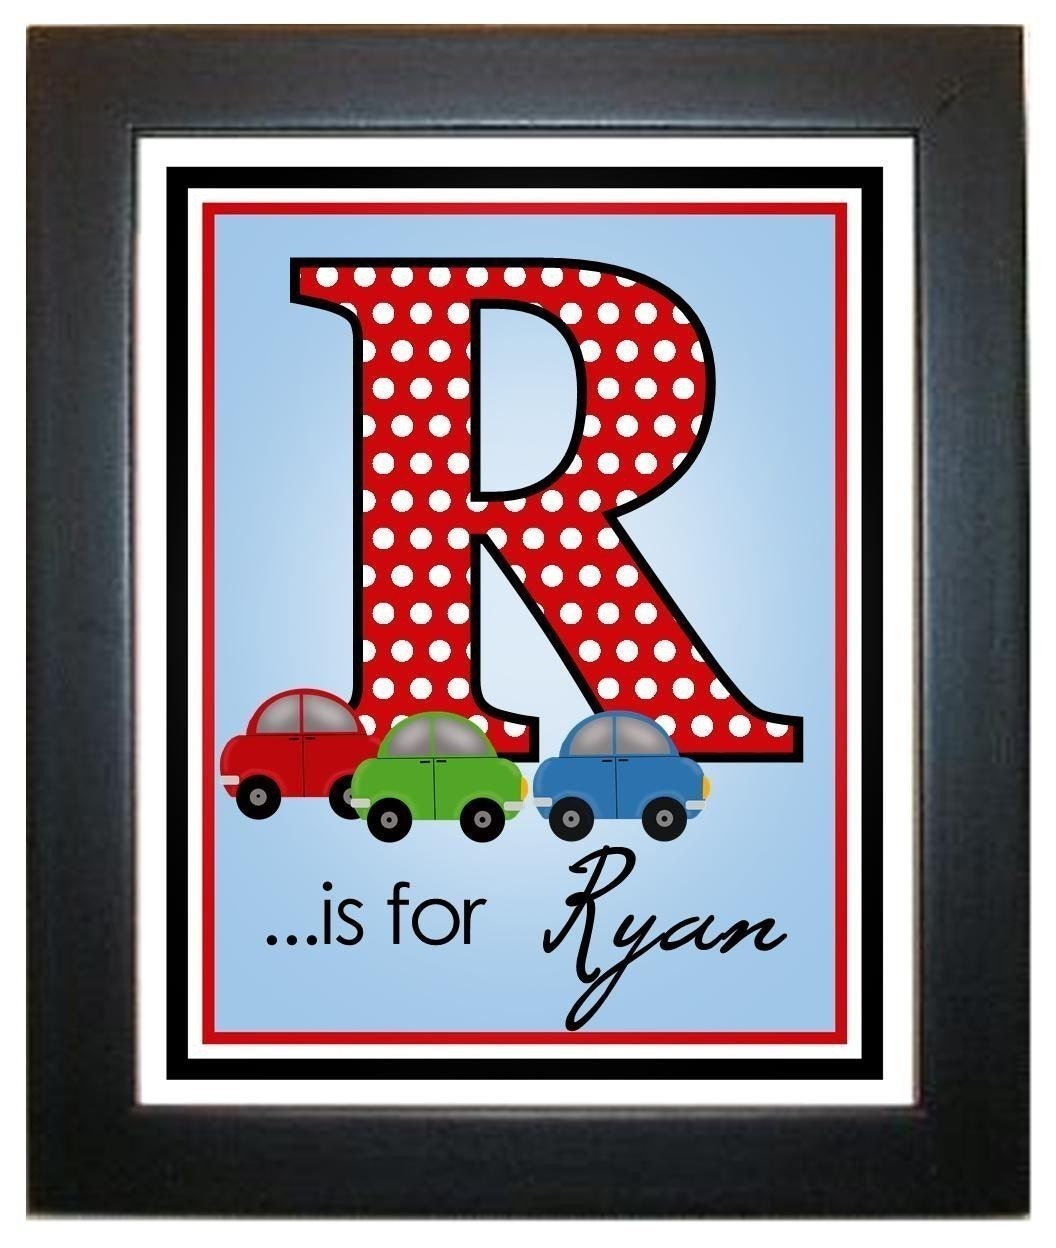 Etsy Initial Wall Decor : Personalized wall prints art by